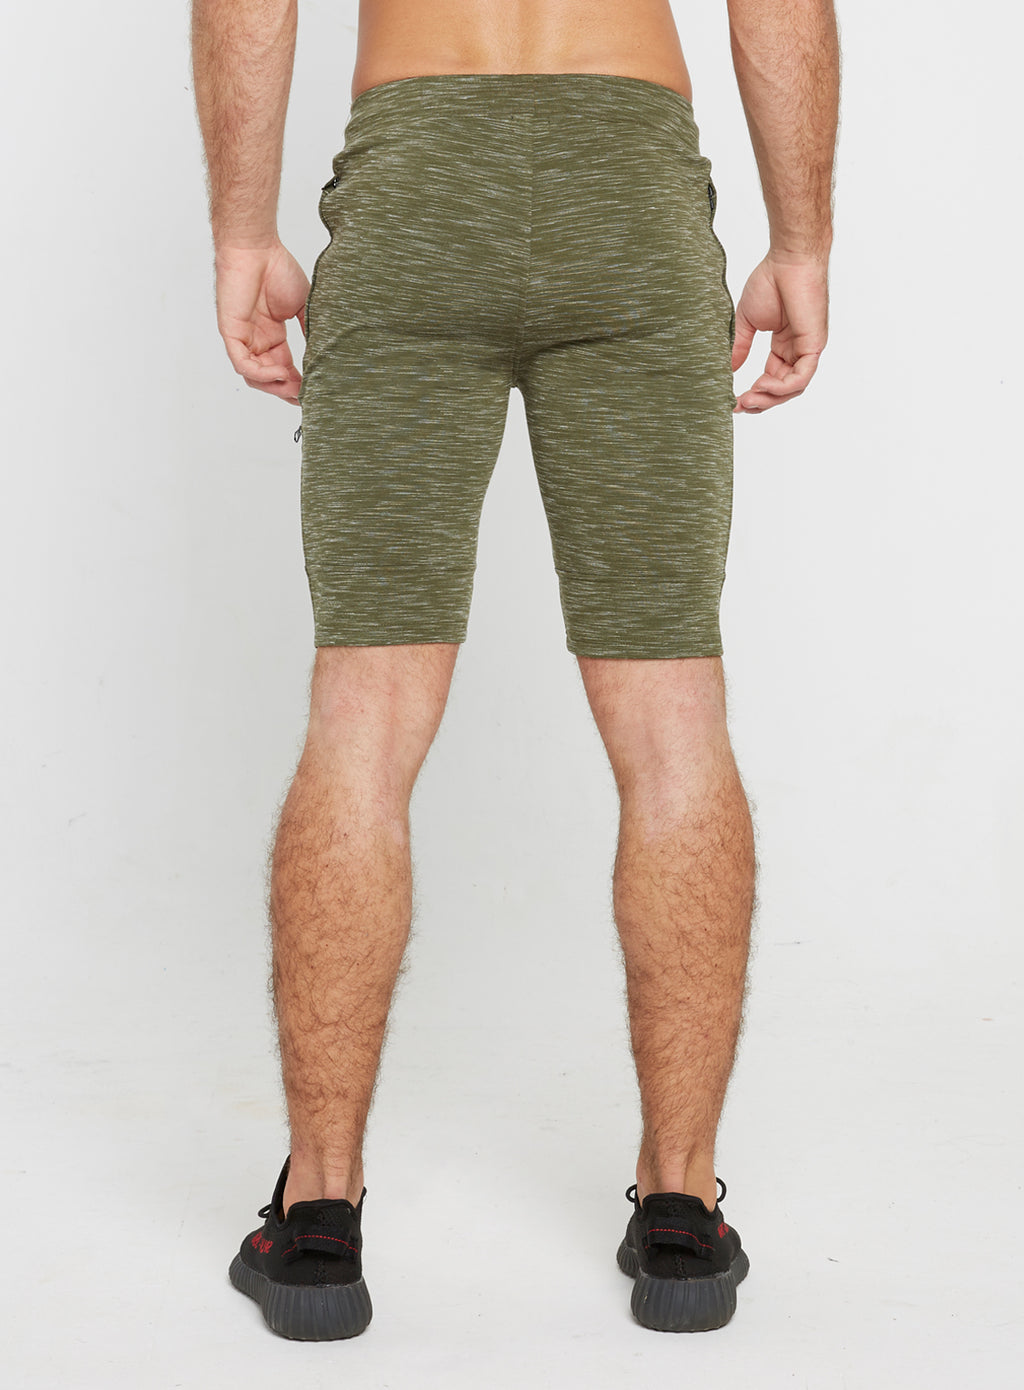 Gym Monkee - Olive Striped Shorts REAR